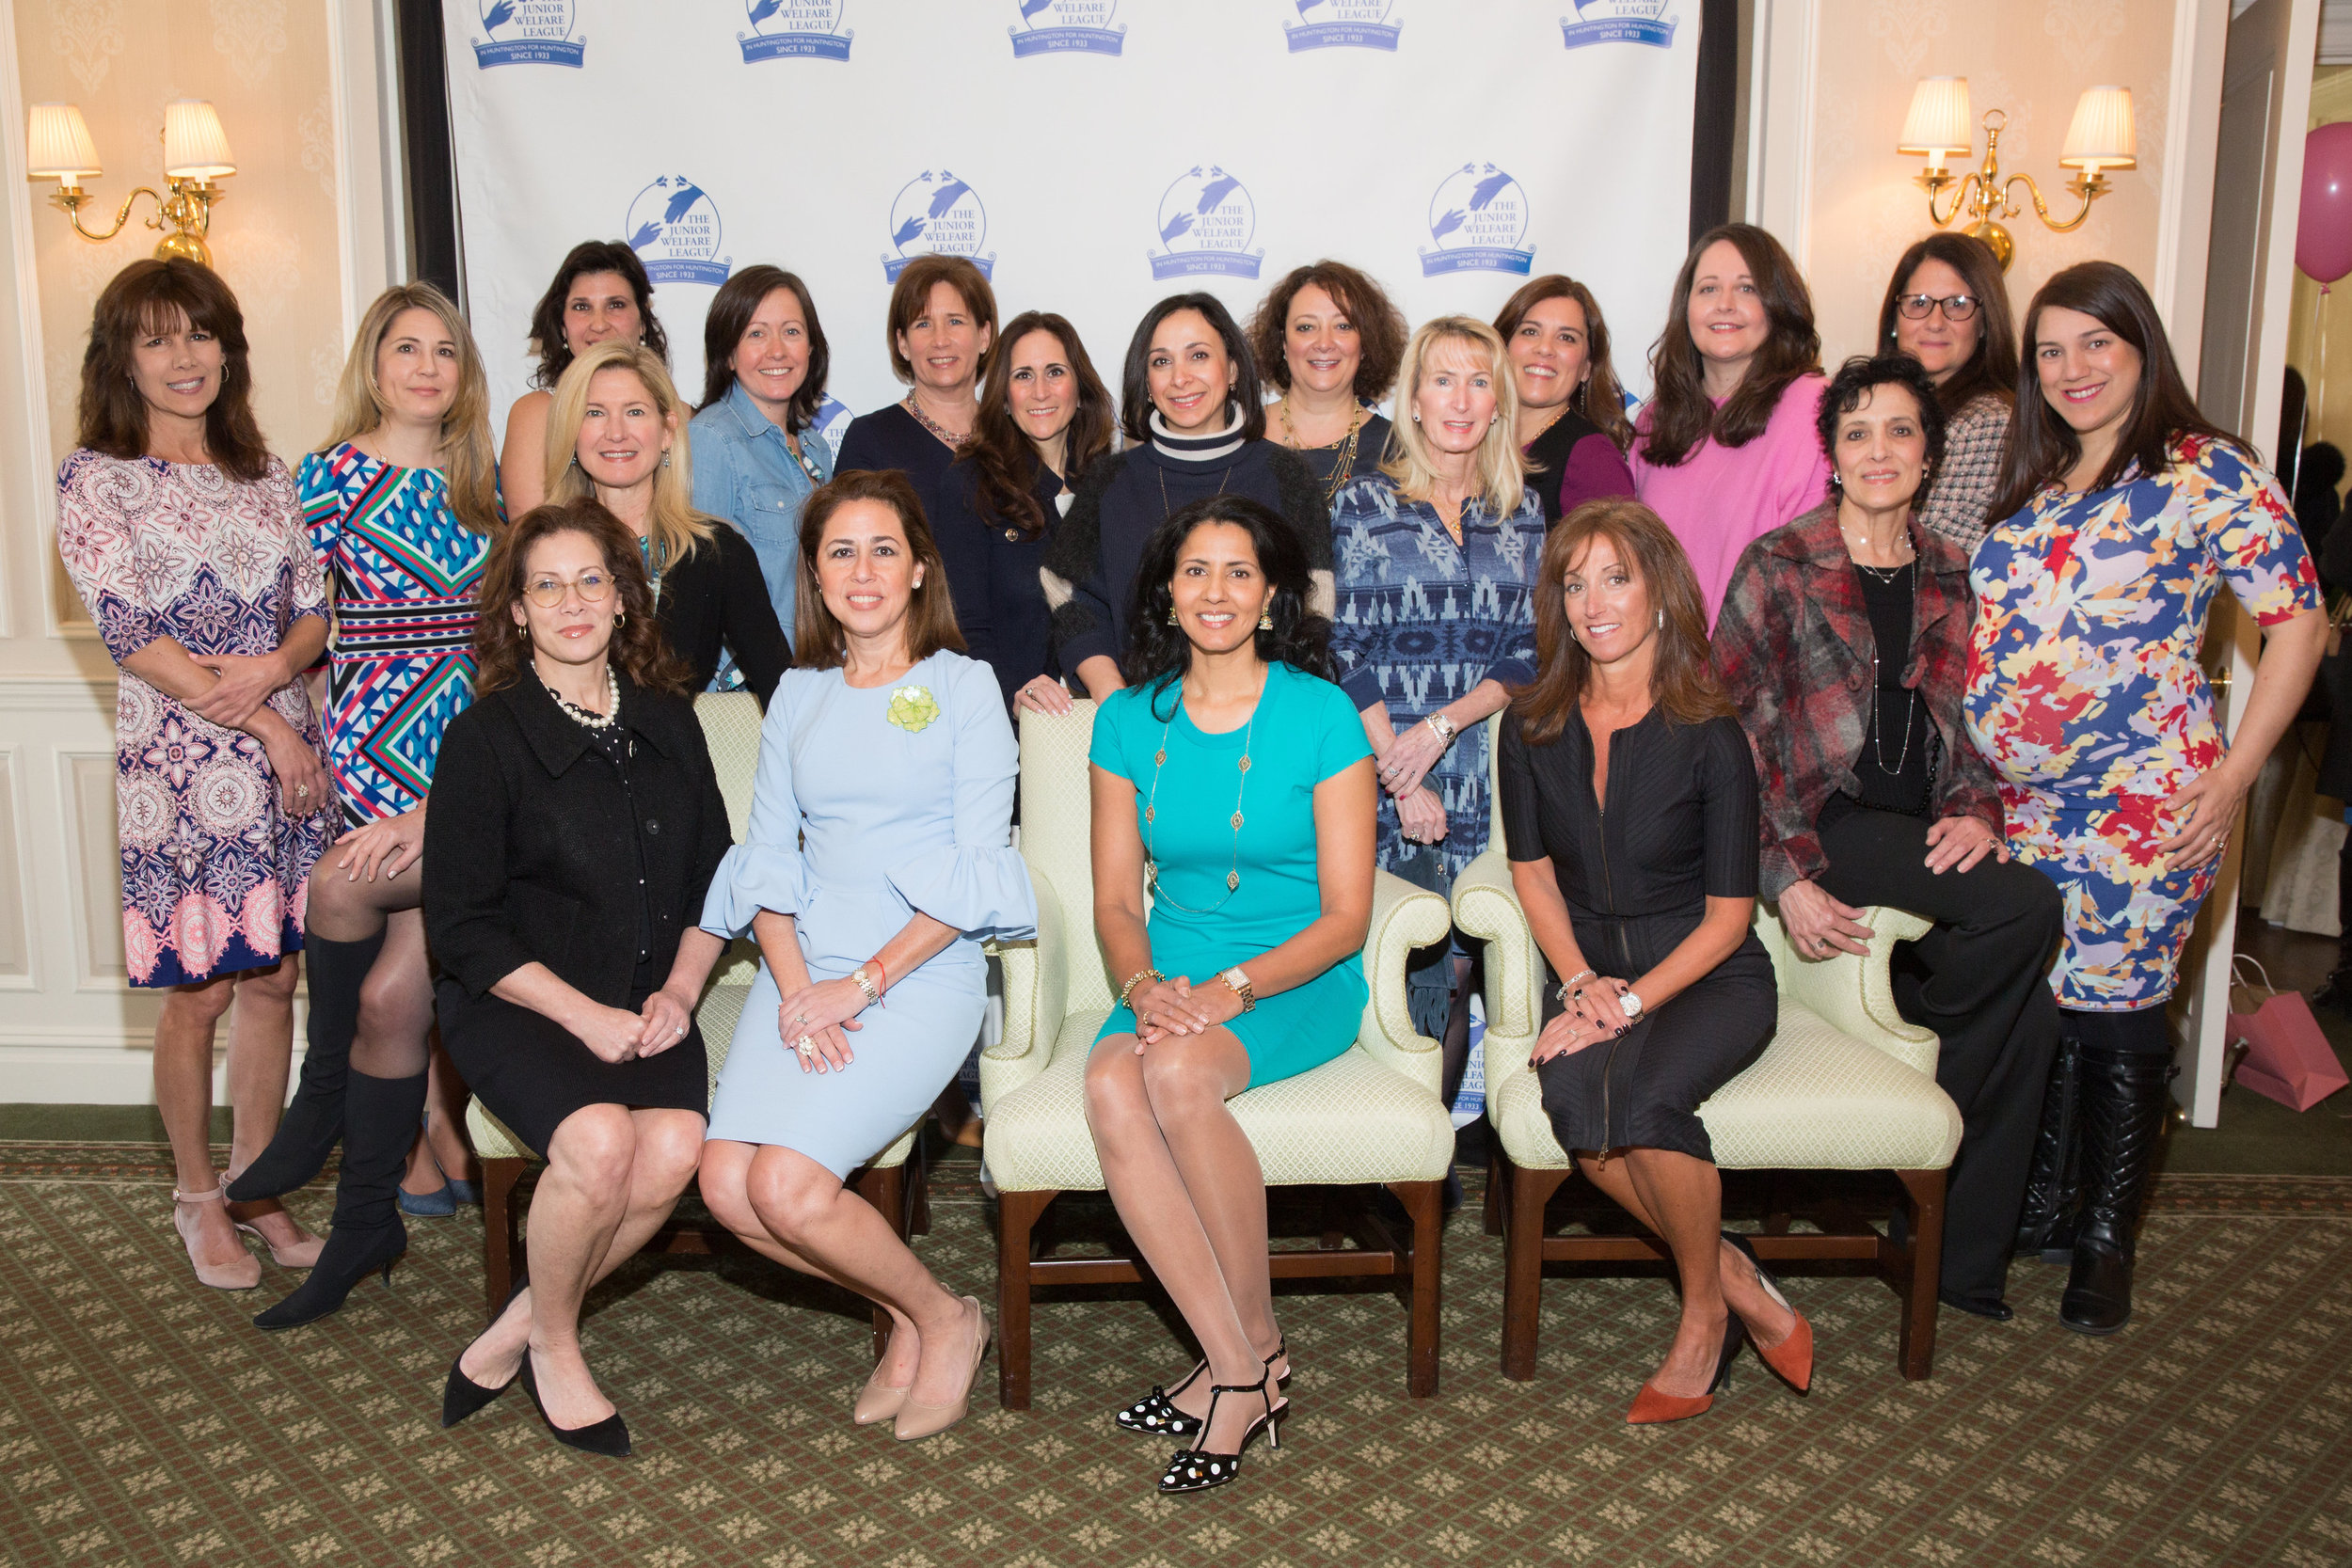 Over 150 women gathered at the Huntington Country Club on March 18 for the Junior Welfare League's annual Spring Luncheon.   Photos/Jennifer Vacca for Zoot Shoot Photographers